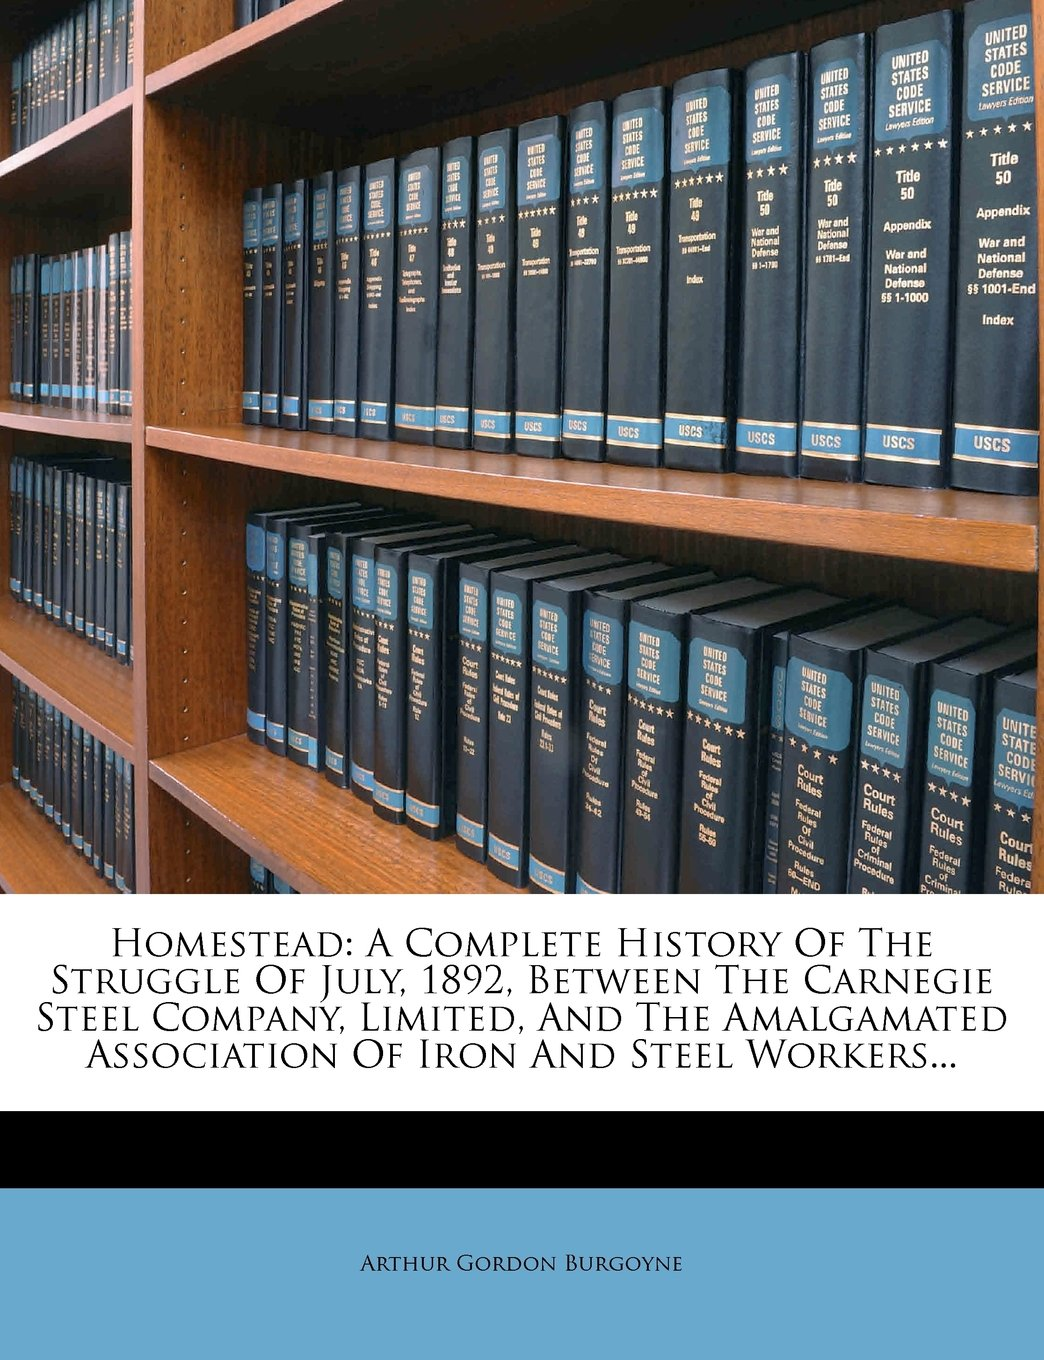 Homestead: A Complete History Of The Struggle Of July, 1892, Between The Carnegie Steel Company, Limited, And The Amalgamated Association Of Iron And Steel Workers... ebook